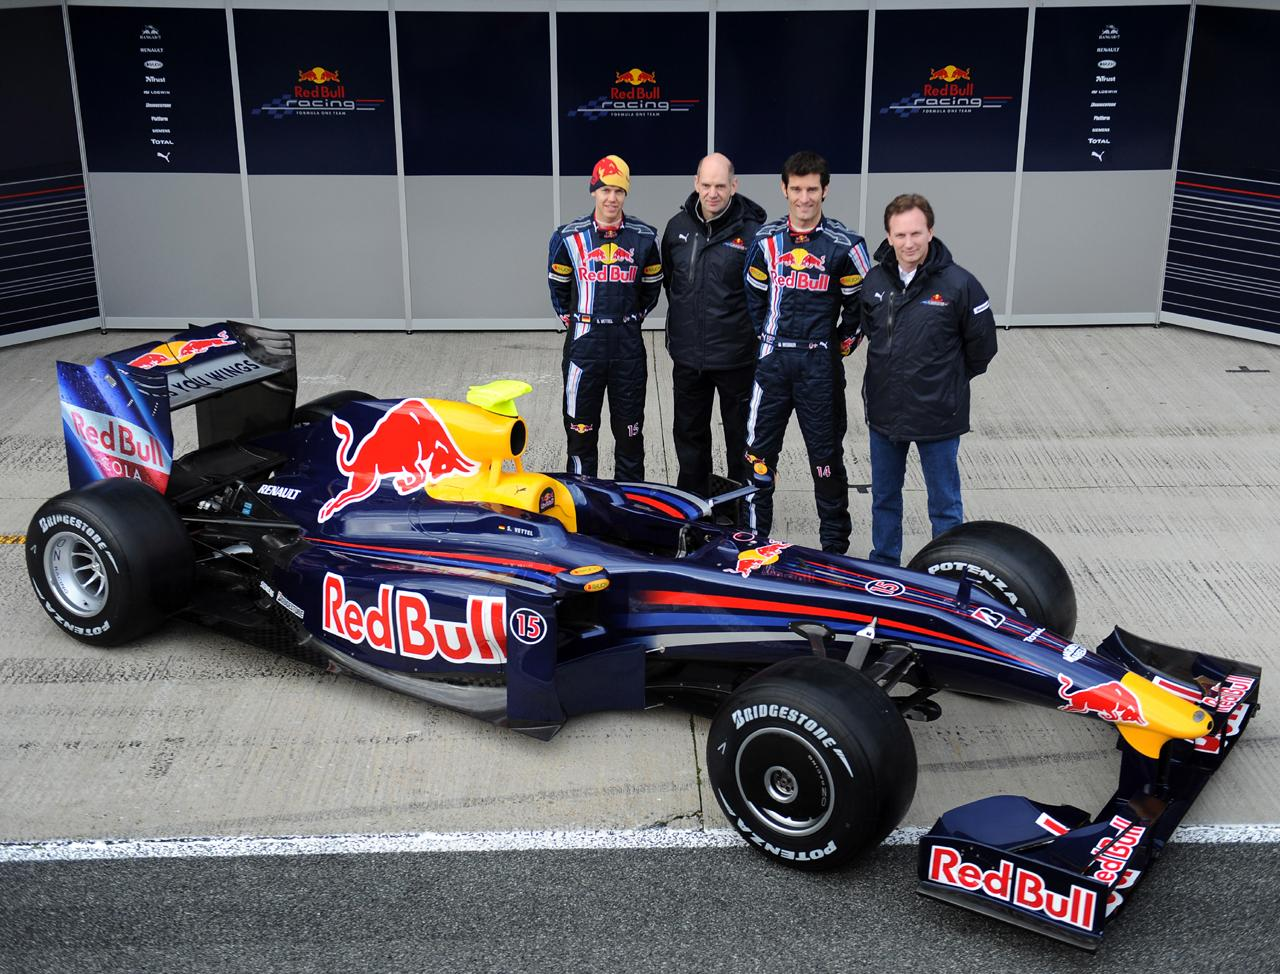 Red bull rb5 photo - 4